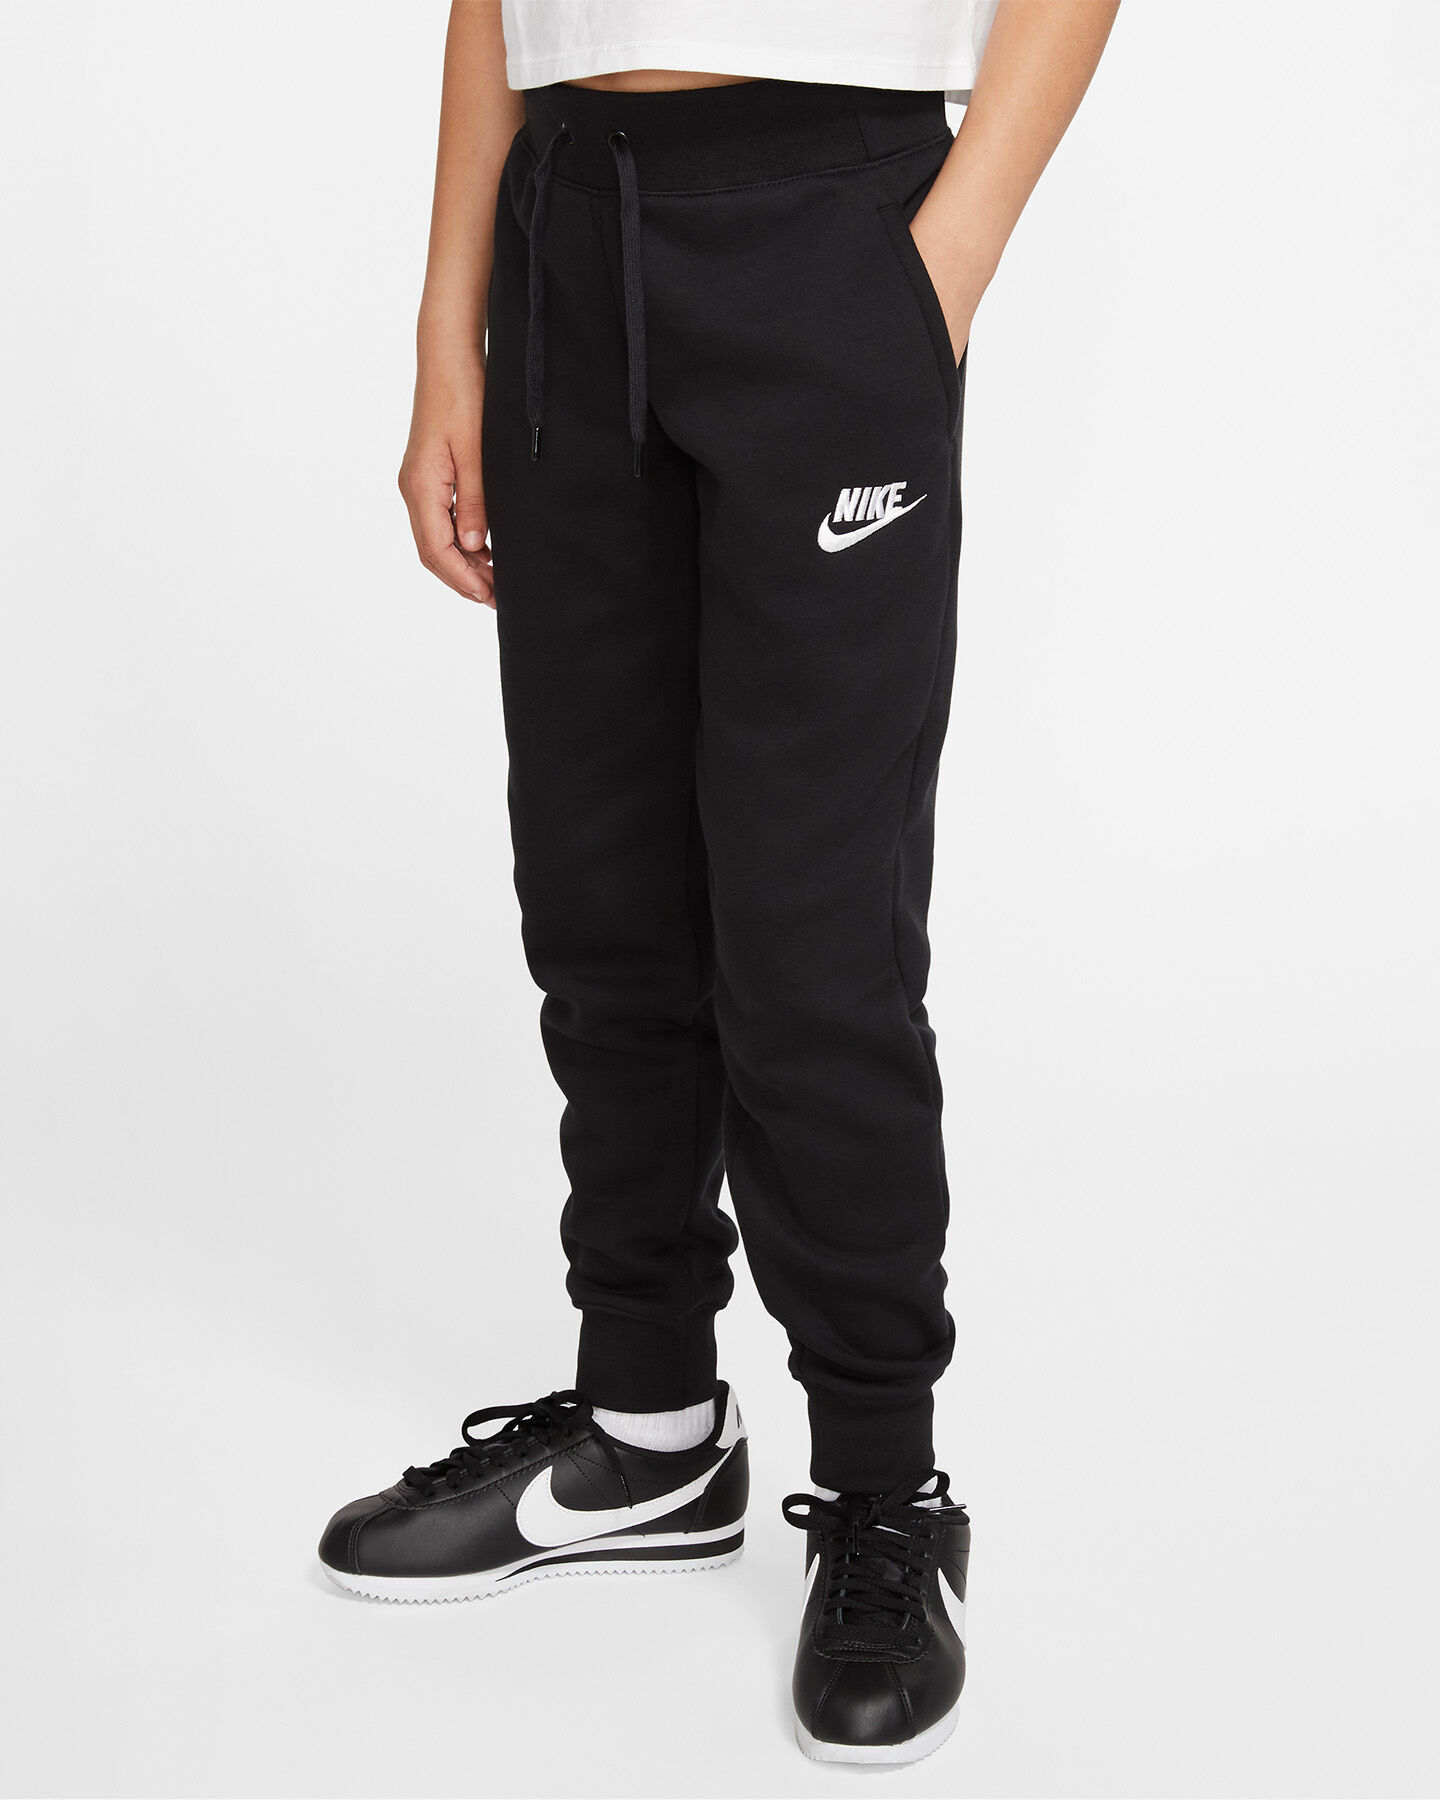 Pantalone NIKE YOUNG ATHLETES JR S5073085 scatto 2